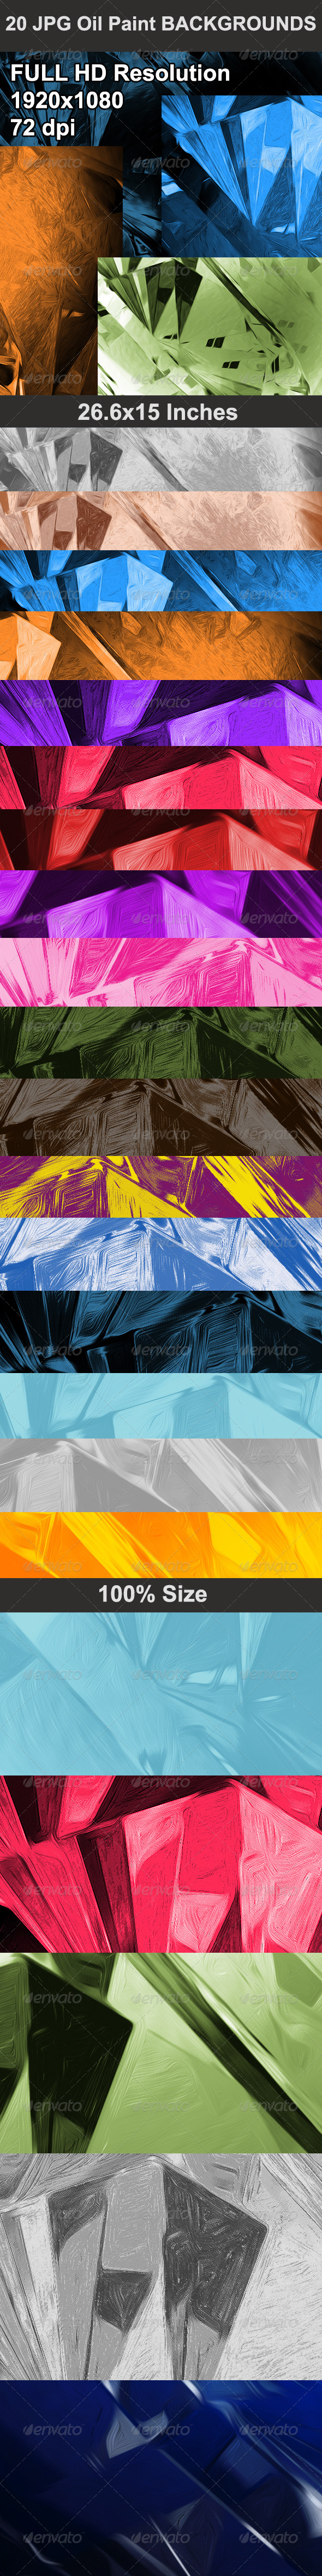 GraphicRiver Oil Paint Backgrounds 5250974